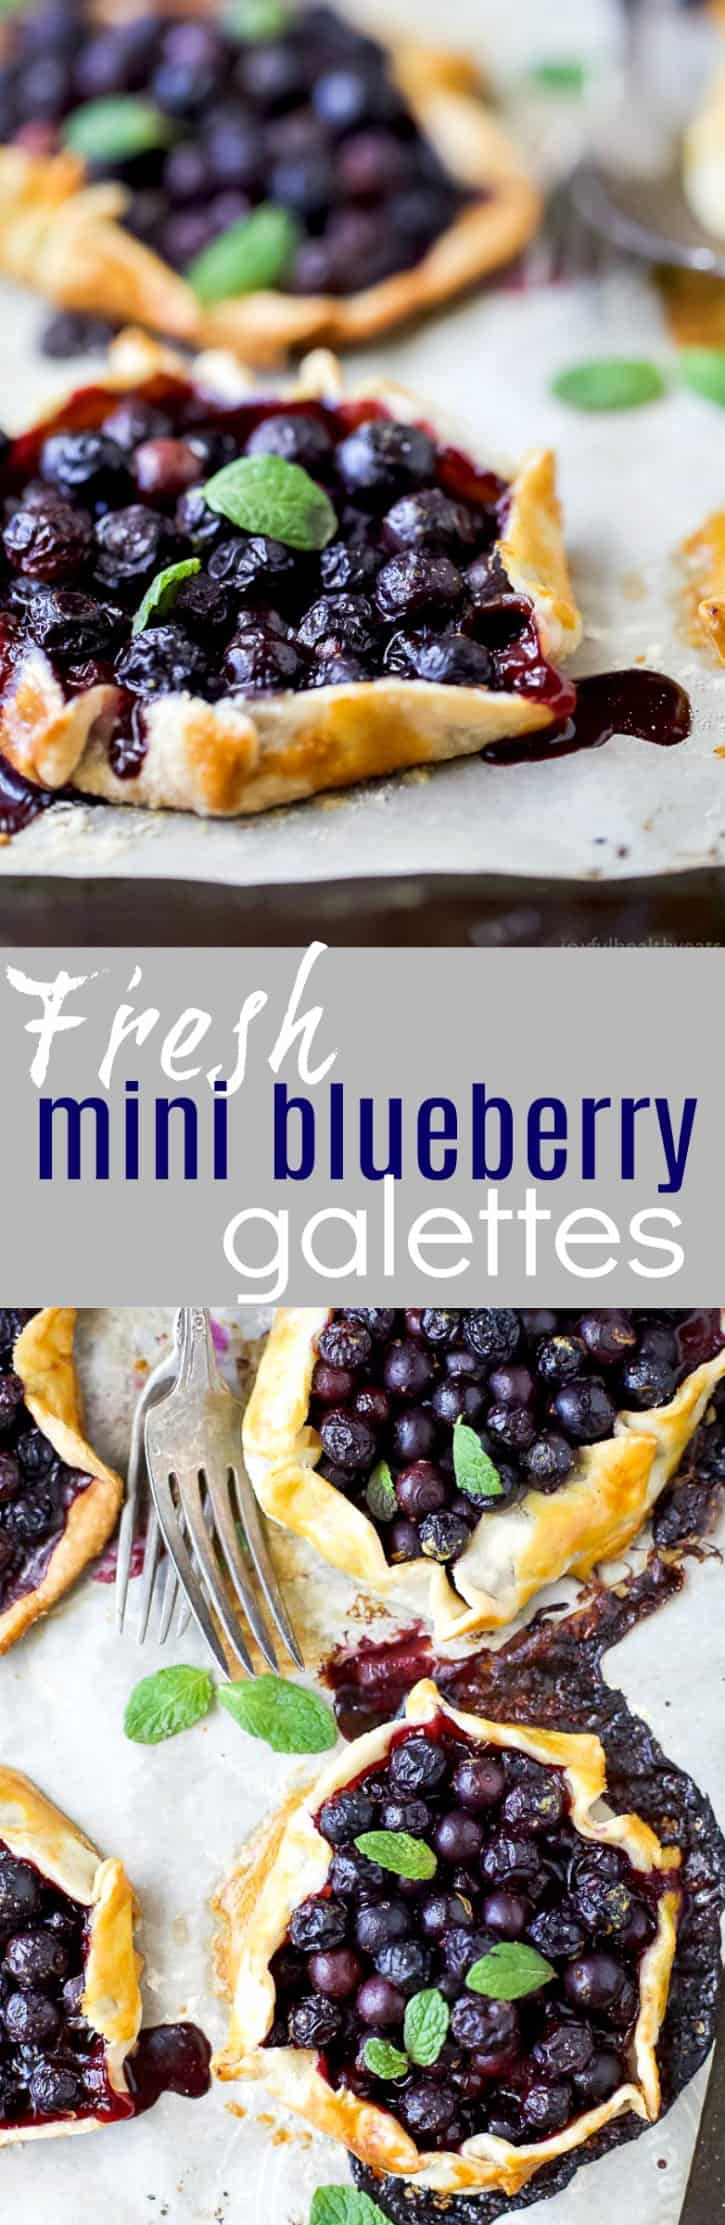 Fresh Mini Blueberry Galettes - a quick dessert perfect for a light sweet treat! Crispy flaky pie dough stuffed with bursting blueberries and topped with vanilla creme fraiche. These galettes are sure to please a crowd!